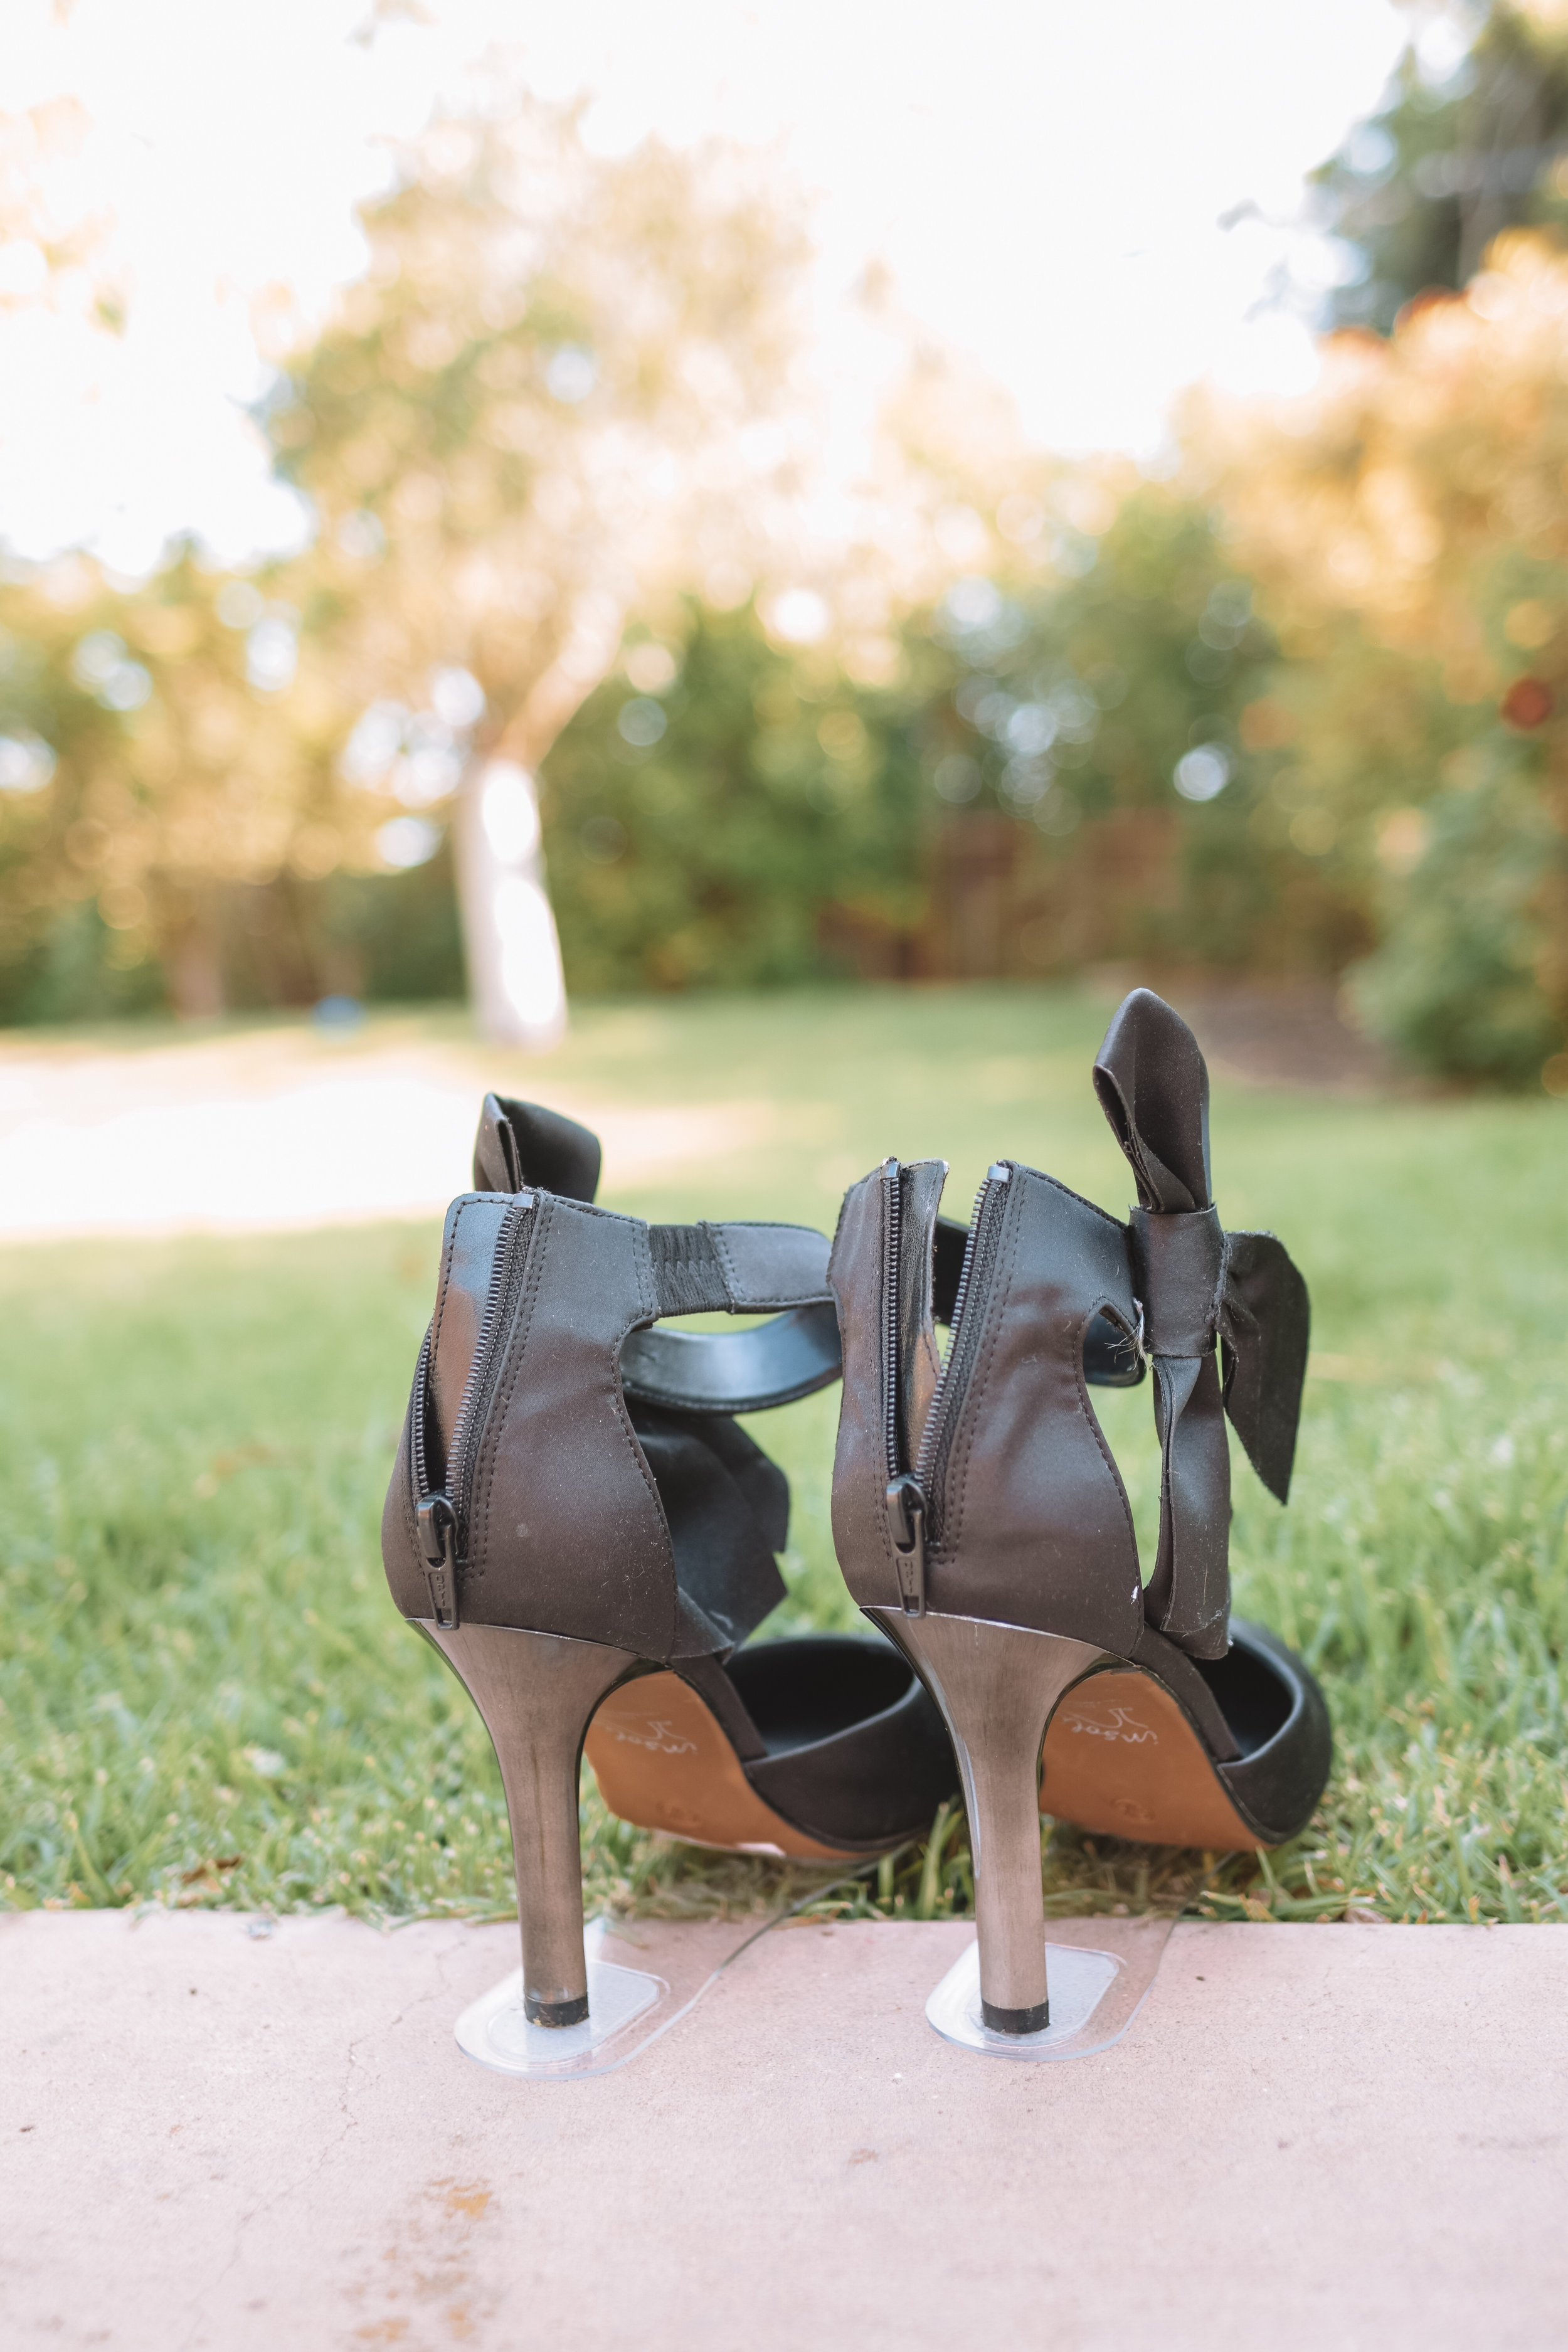 Grasswalkers - Prevent heels from sticking into the grass - The Overwhelmed Bride Wedding Blog